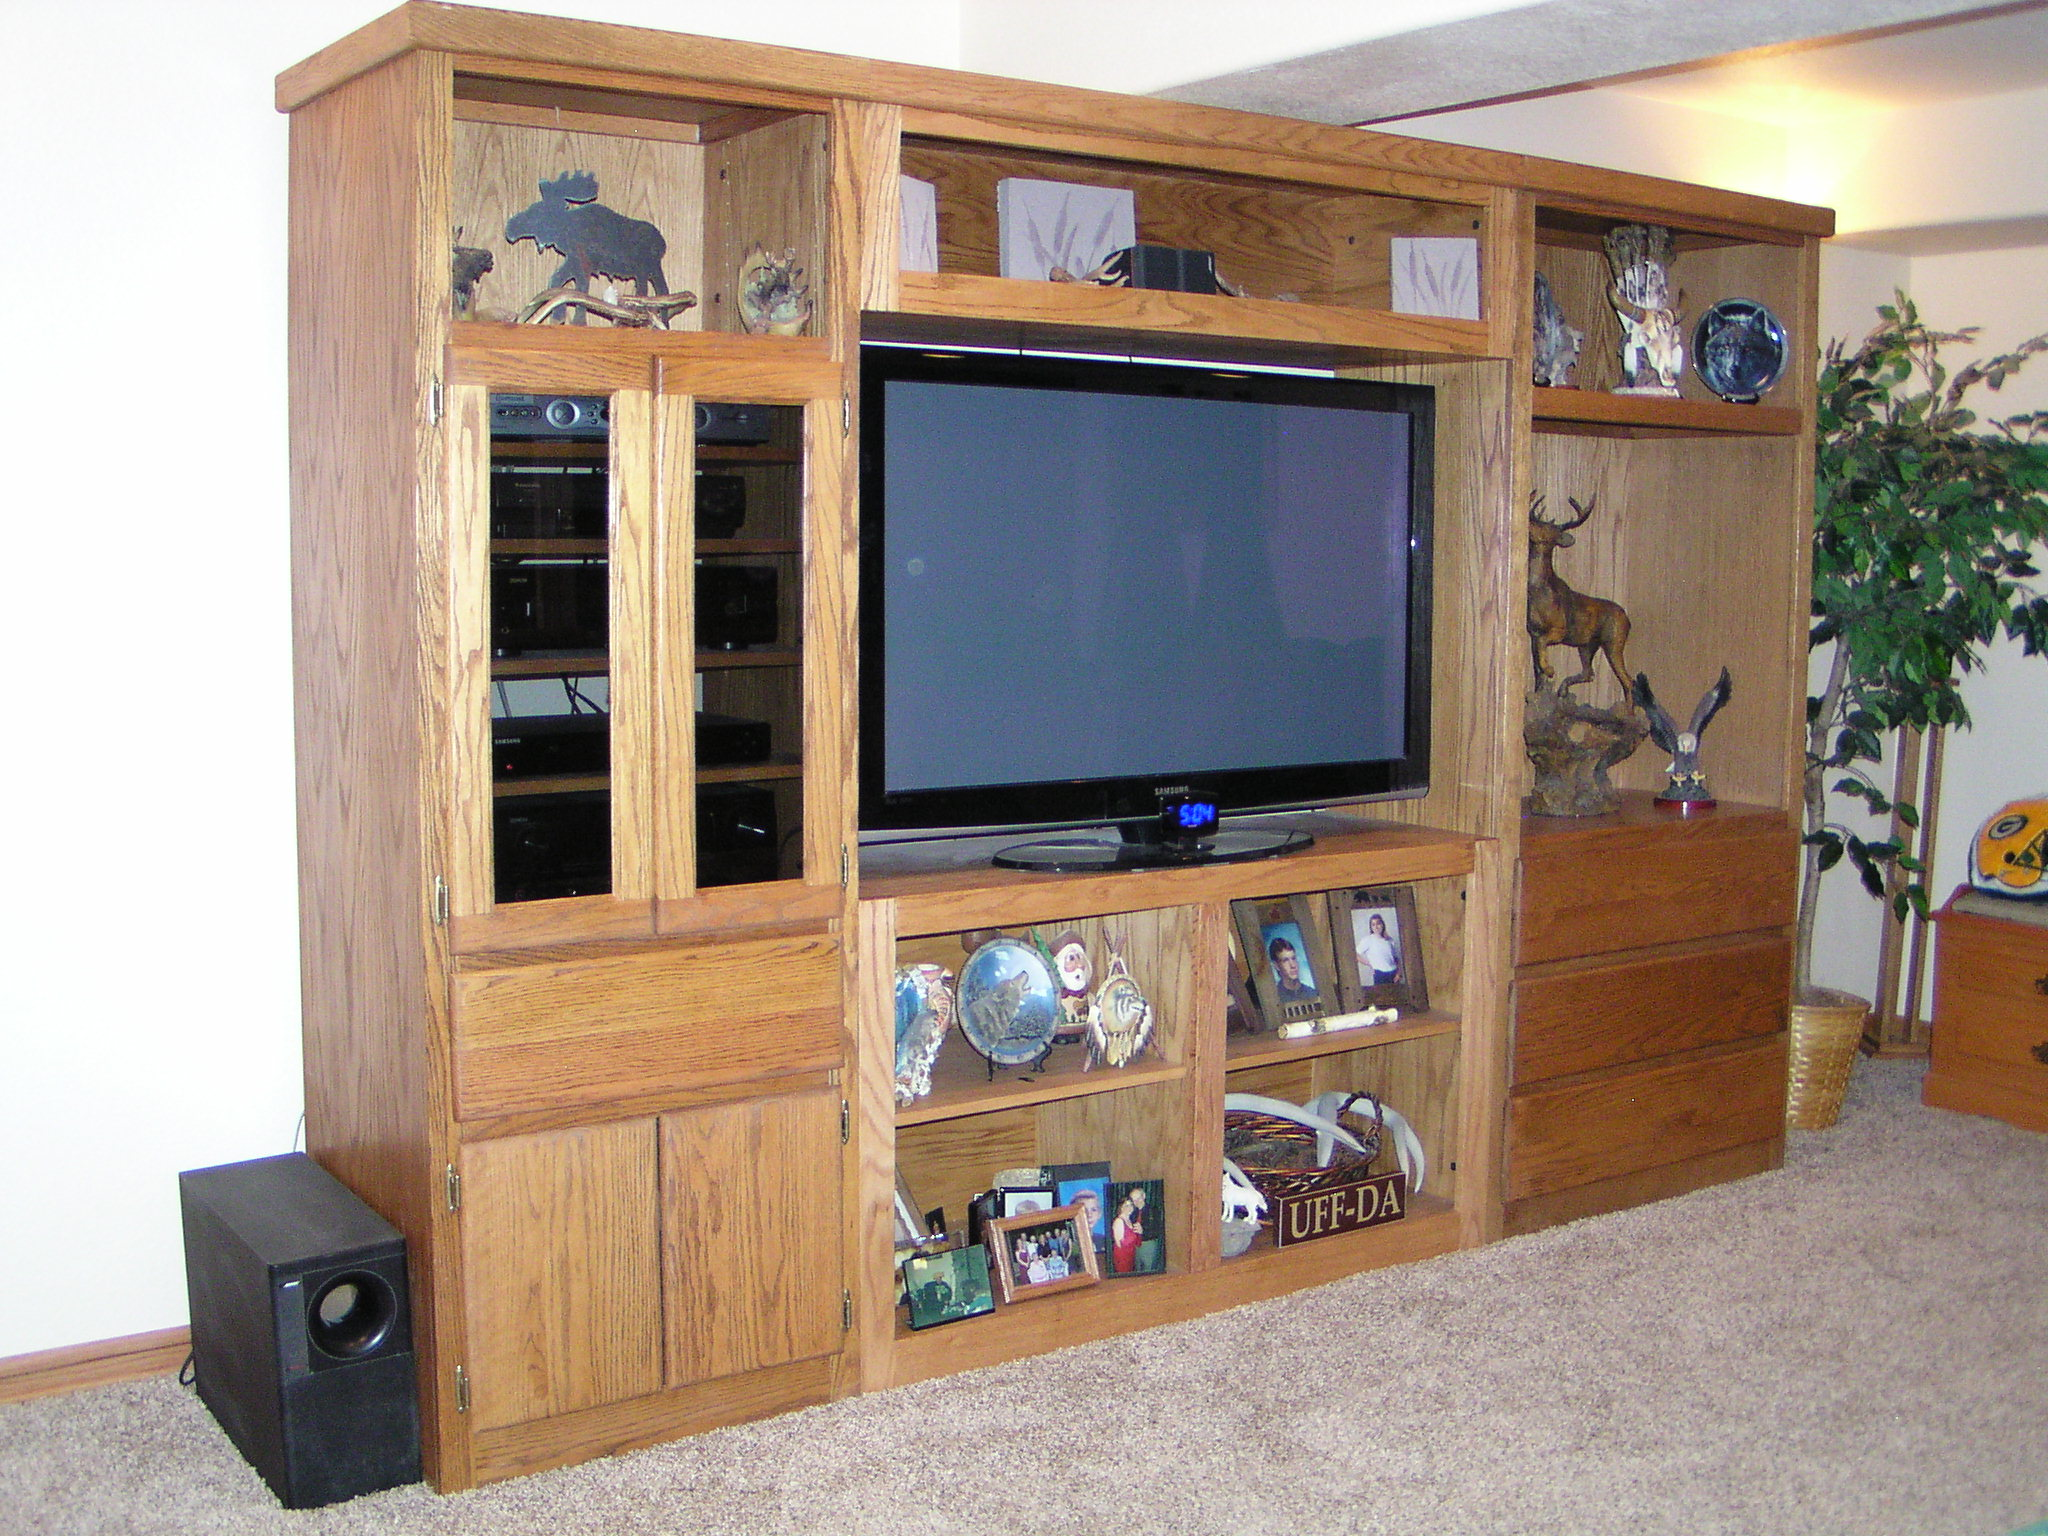 Oak Entertainment Center and Wall Units, custom designed to fit around